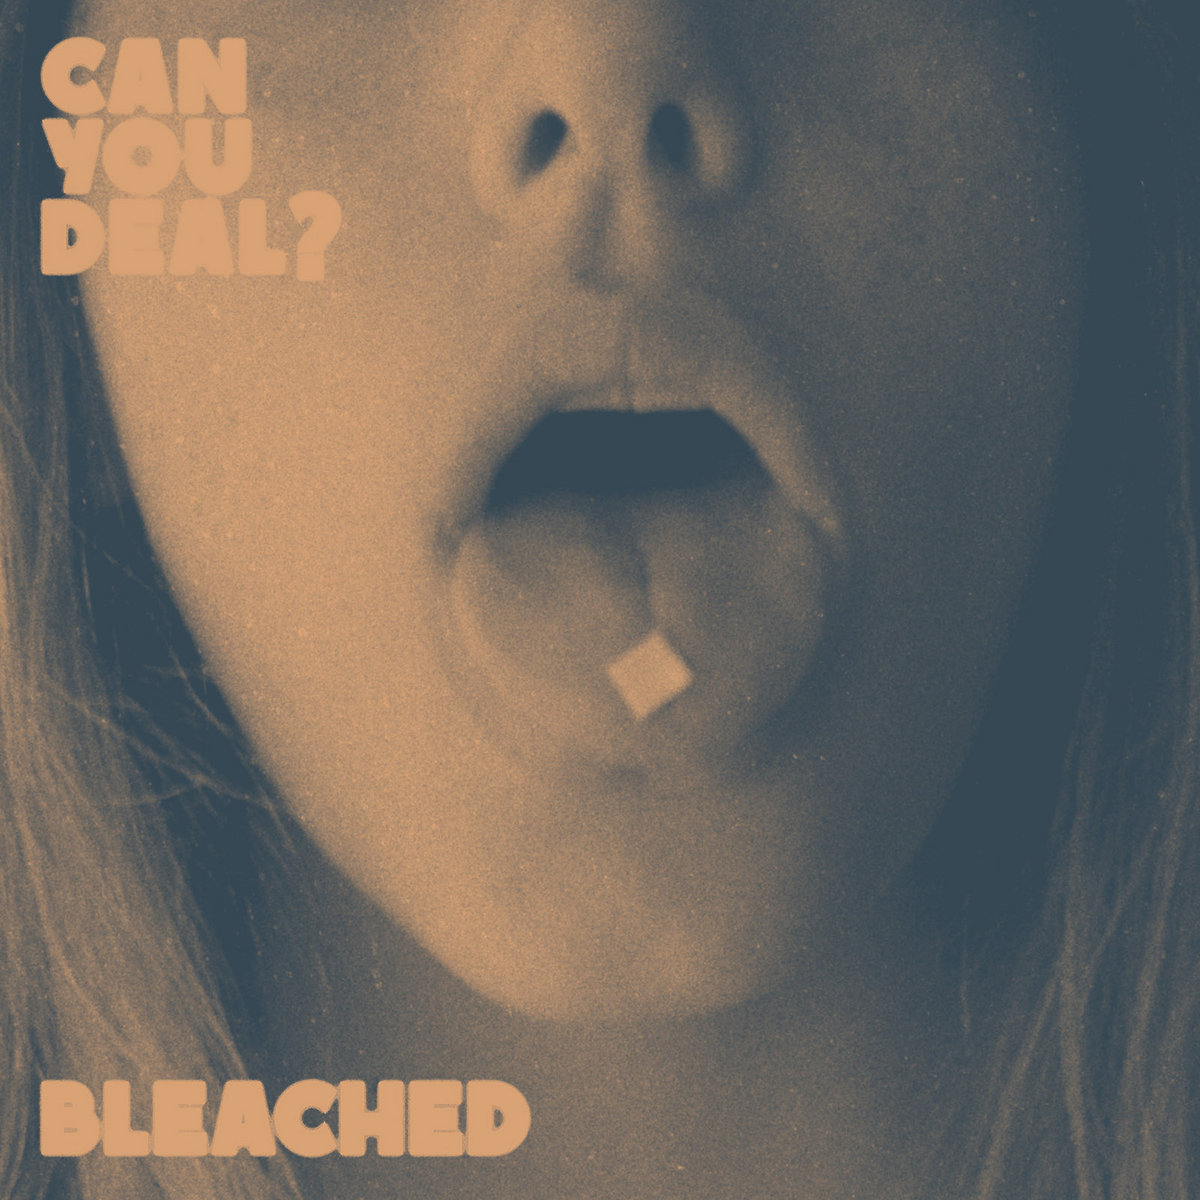 Image result for bleached can you deal band vinyl art